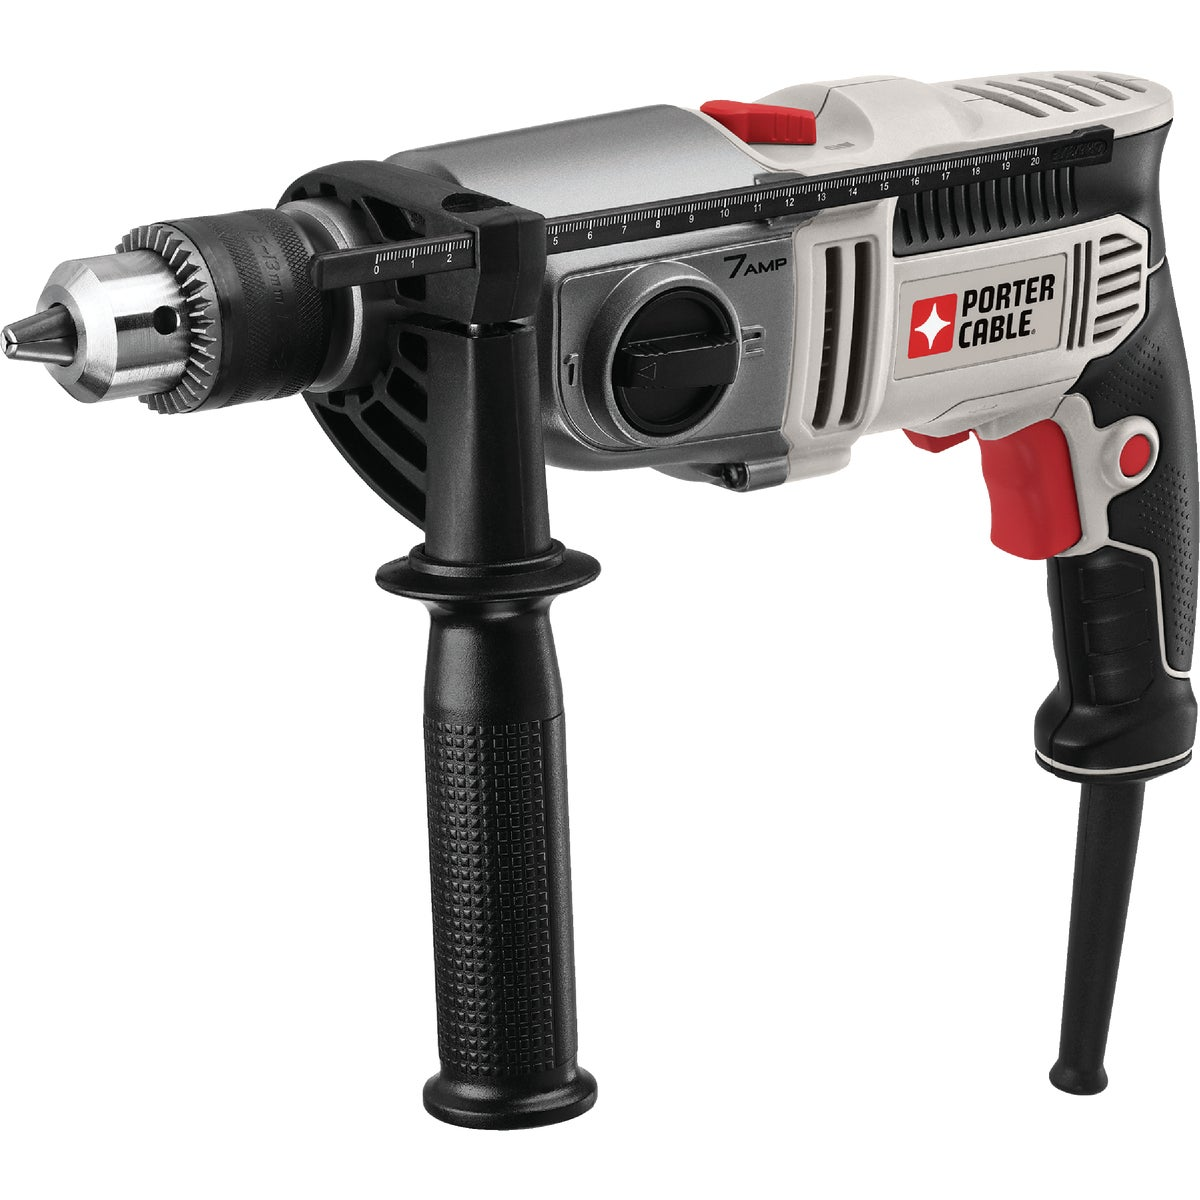 "7.0AMP 1/2"" HAMMERDRILL - PC70THD by Black & Decker"